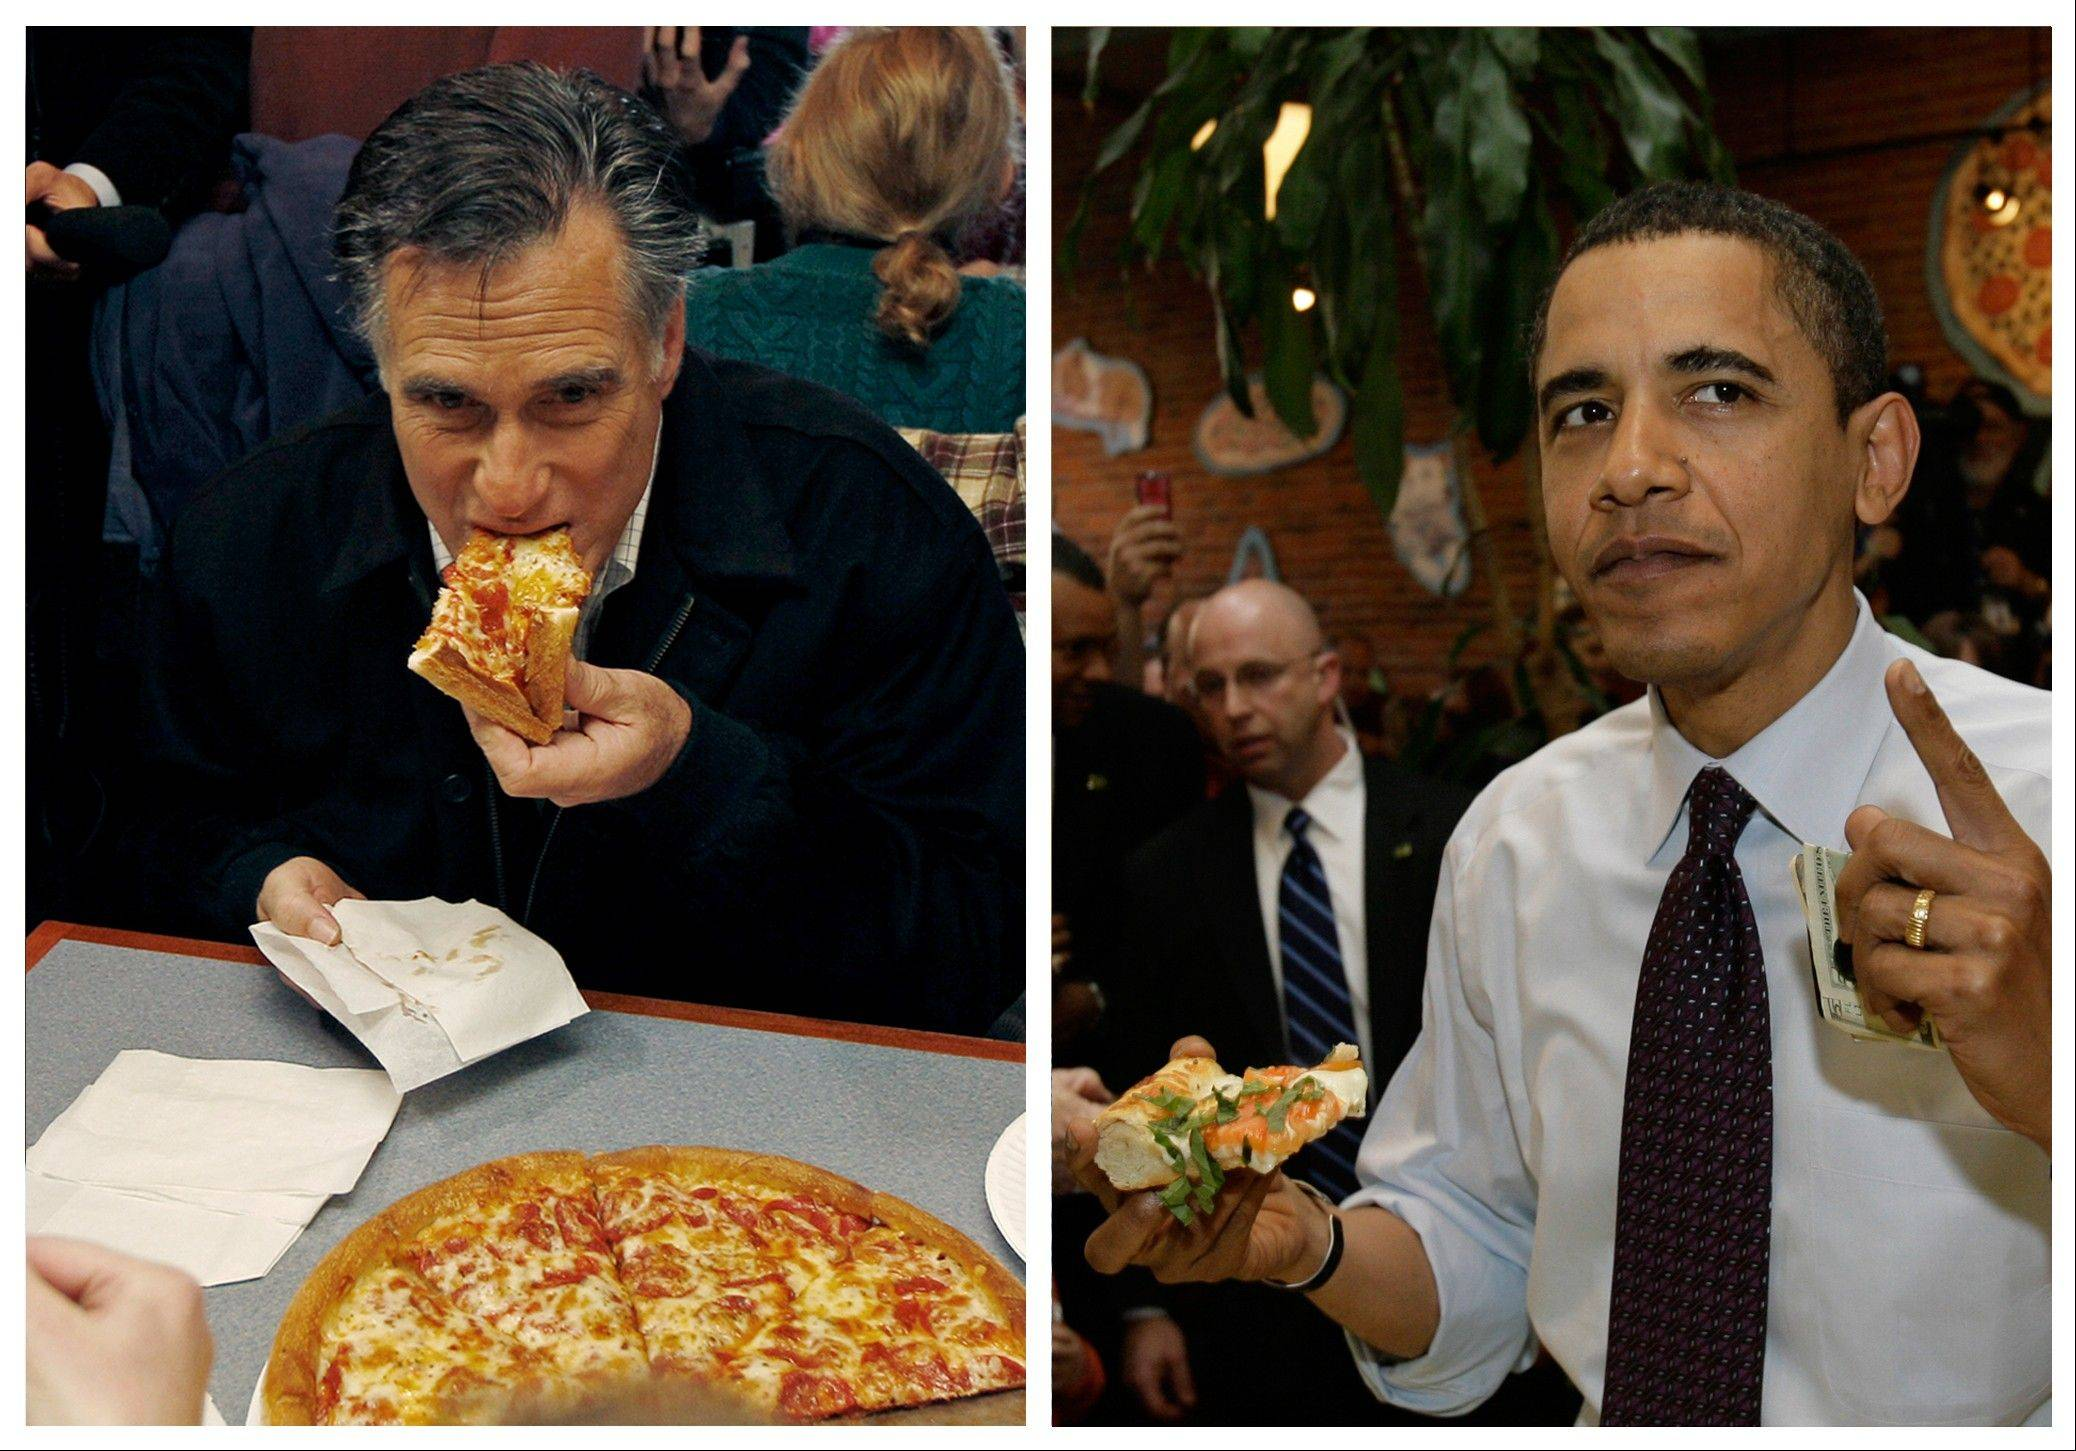 Republican presidential candidate former Mass. Gov. Mitt Romney, left, takes a bite of pizza during lunch with his wife Ann while campaigning at Village Pizza in Newport, N.H., Dec. 20, 2011. Then-Senator Barack Obama, right, takes a bite of pizza at American Dream Pizza in Corvallis, Ore., March 21, 2008.